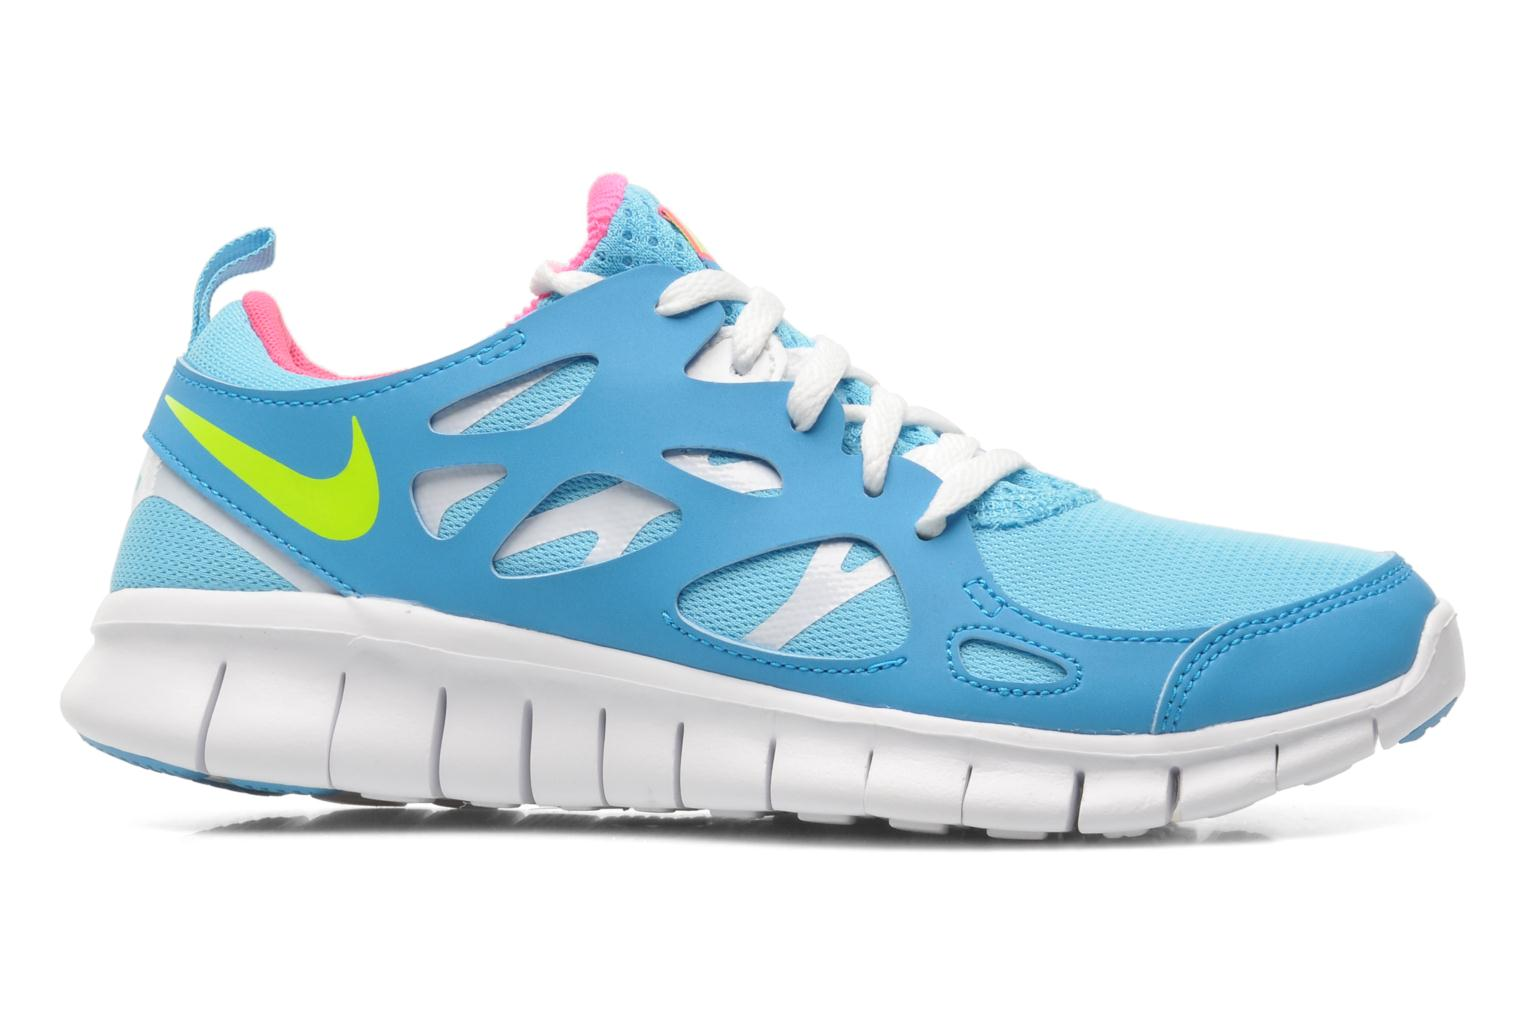 NIKE FREE RUN 2 (GS) CLEARWATER/VOLT-PNK POW-BL LGN